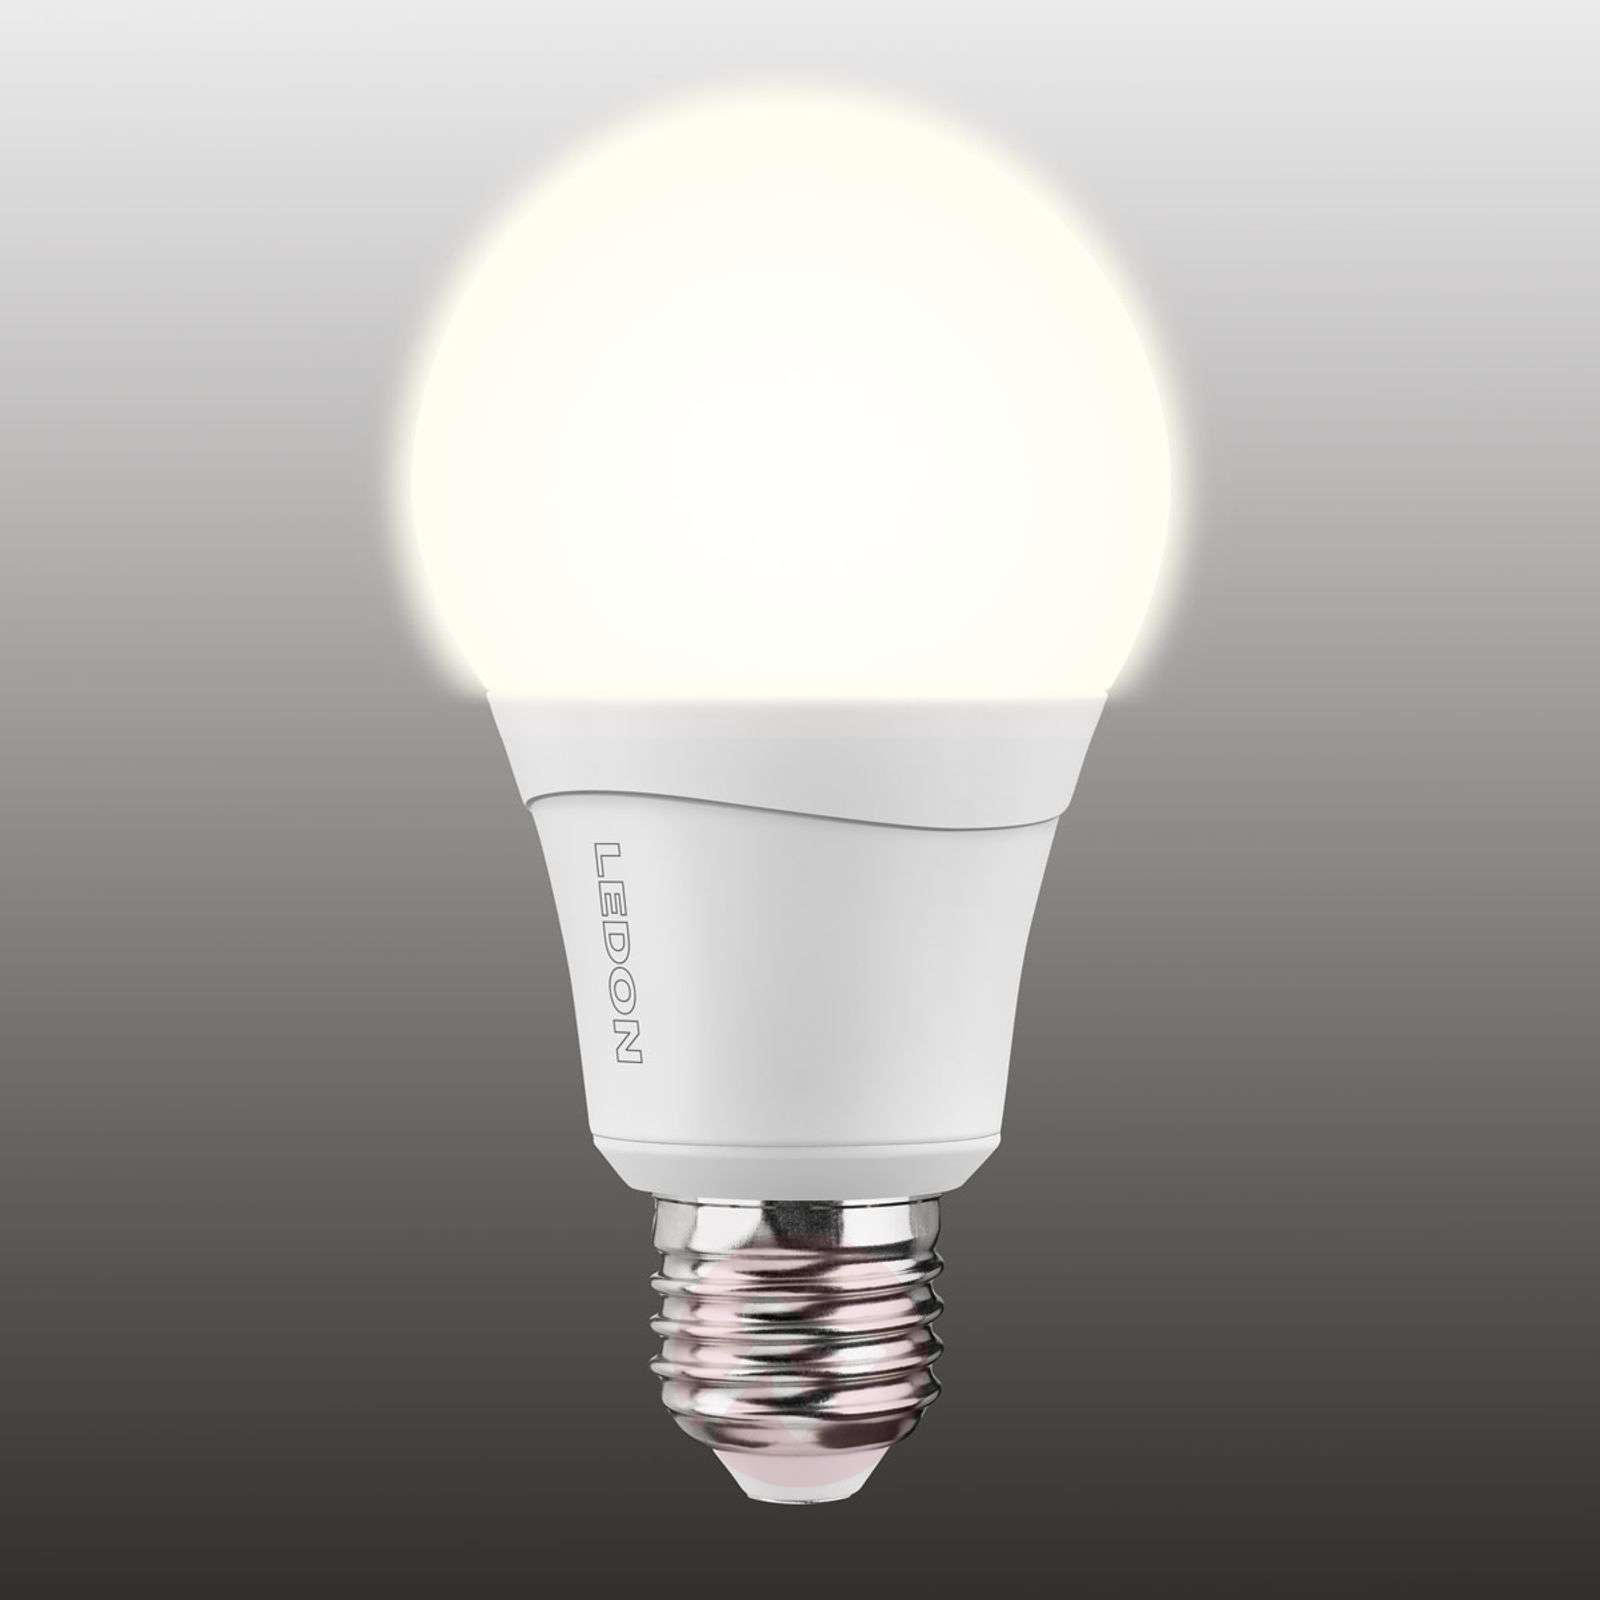 Ampoule LED E27 10 W dual color (827/840), var.-6037110-01